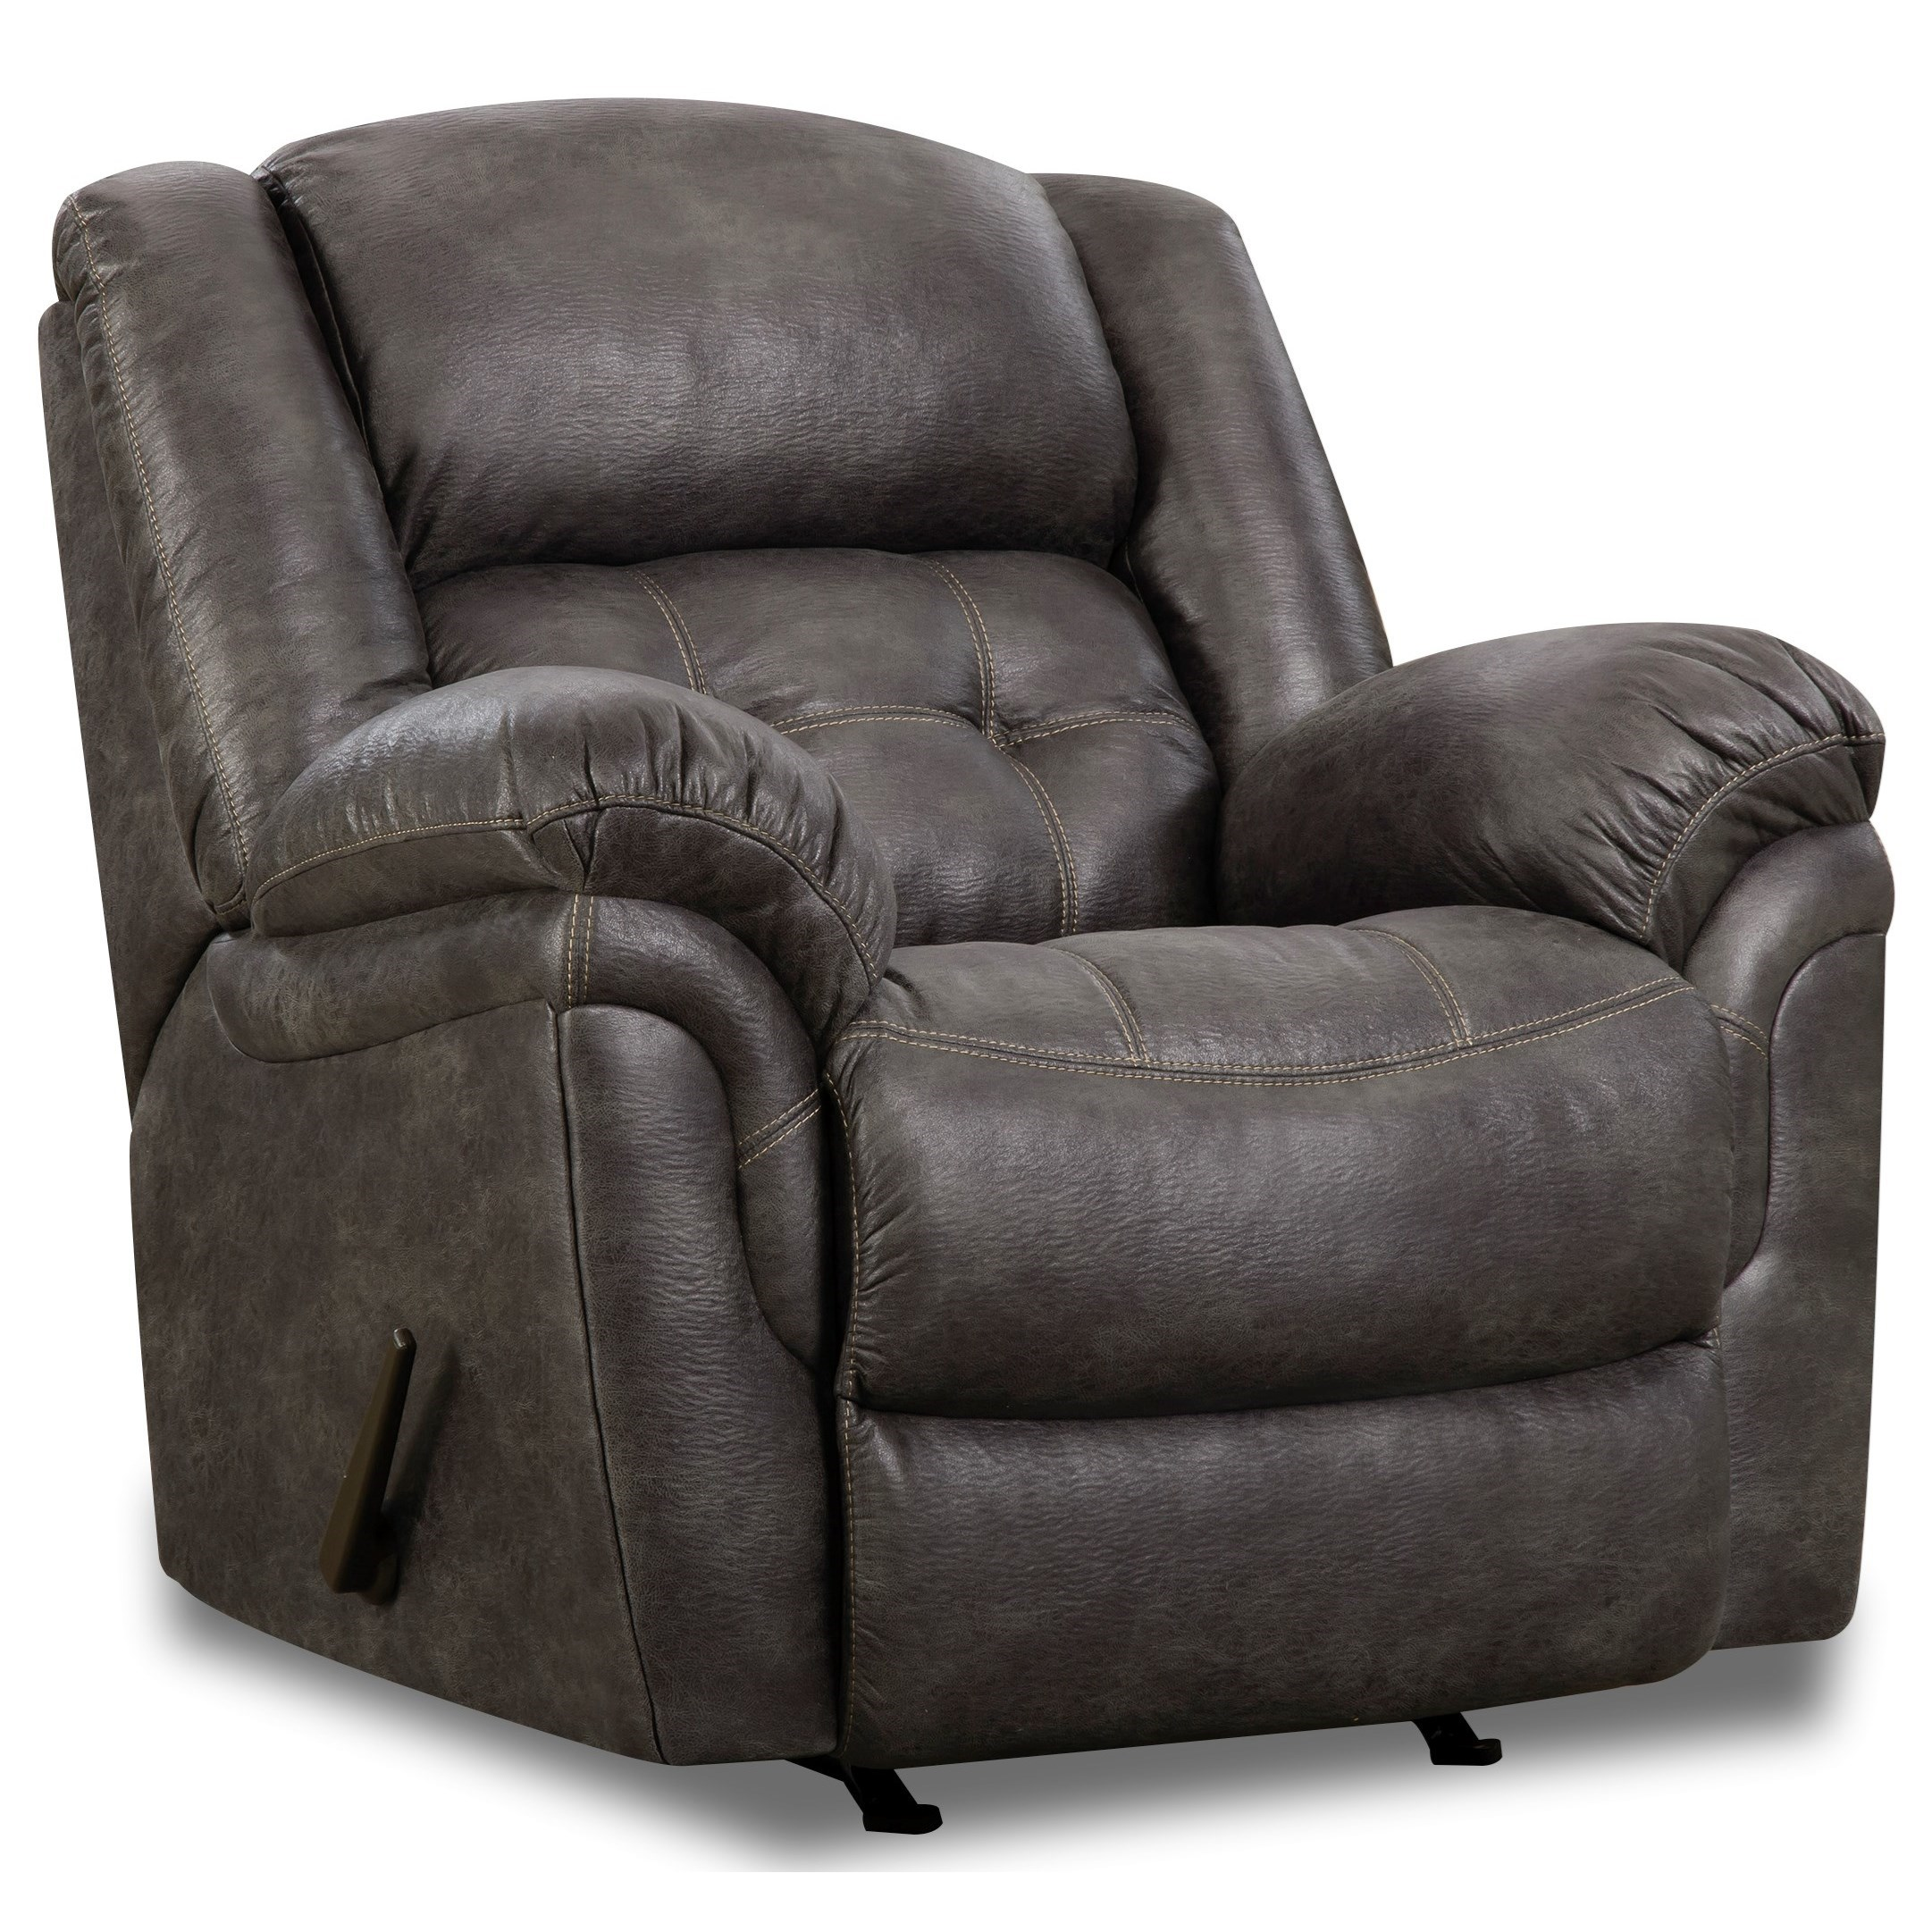 129 Rocker Recliner  by HomeStretch at Story & Lee Furniture